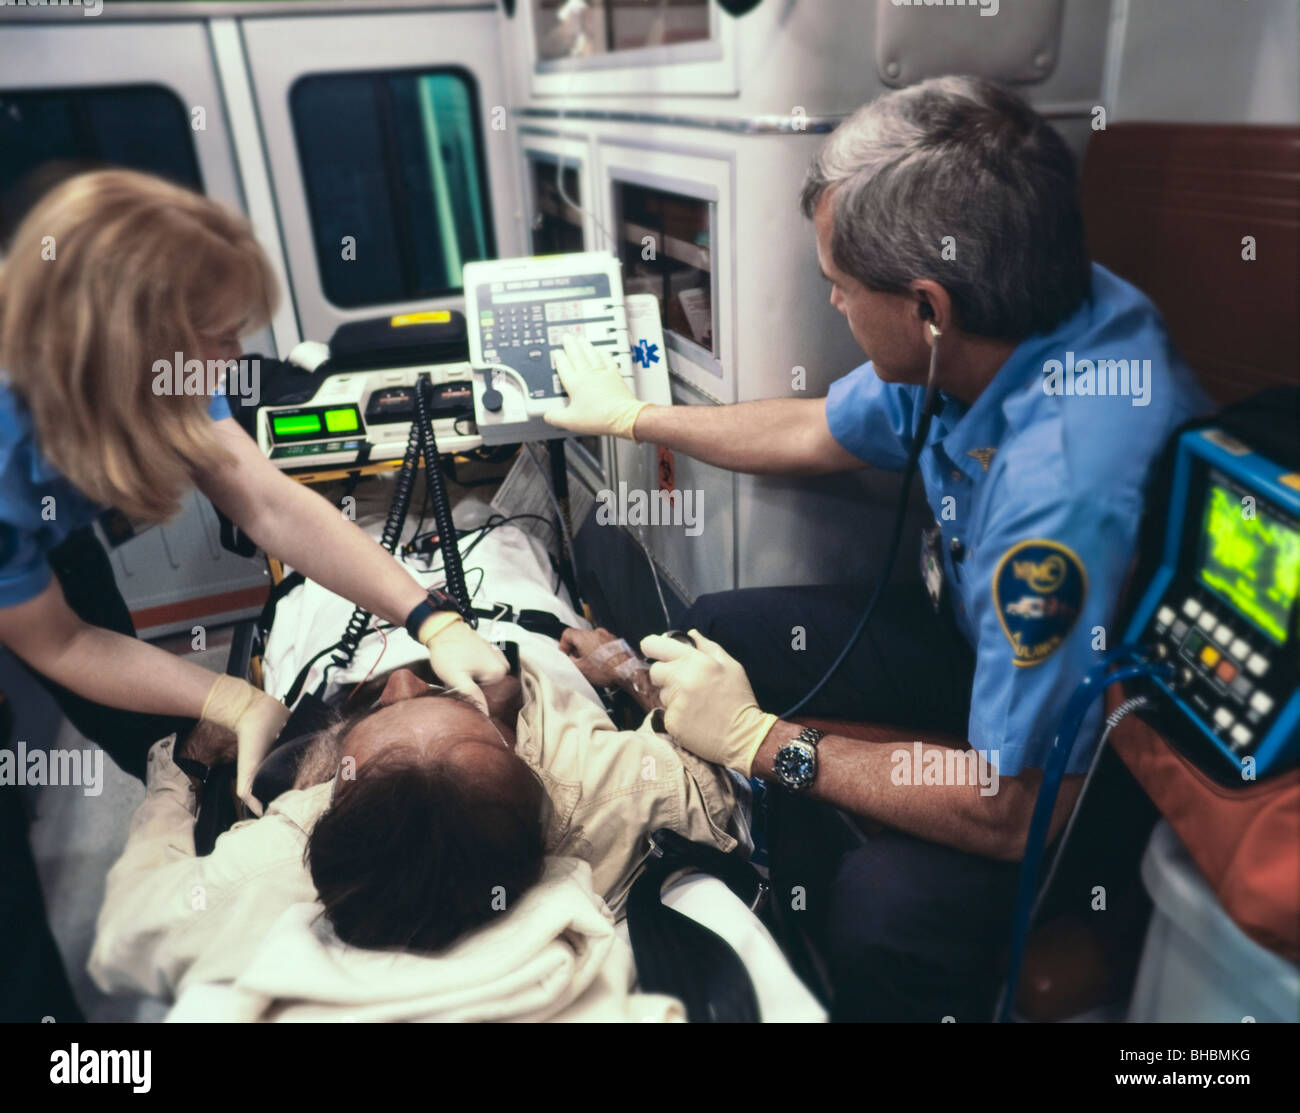 Paramedics with patient in ambulance - Stock Image